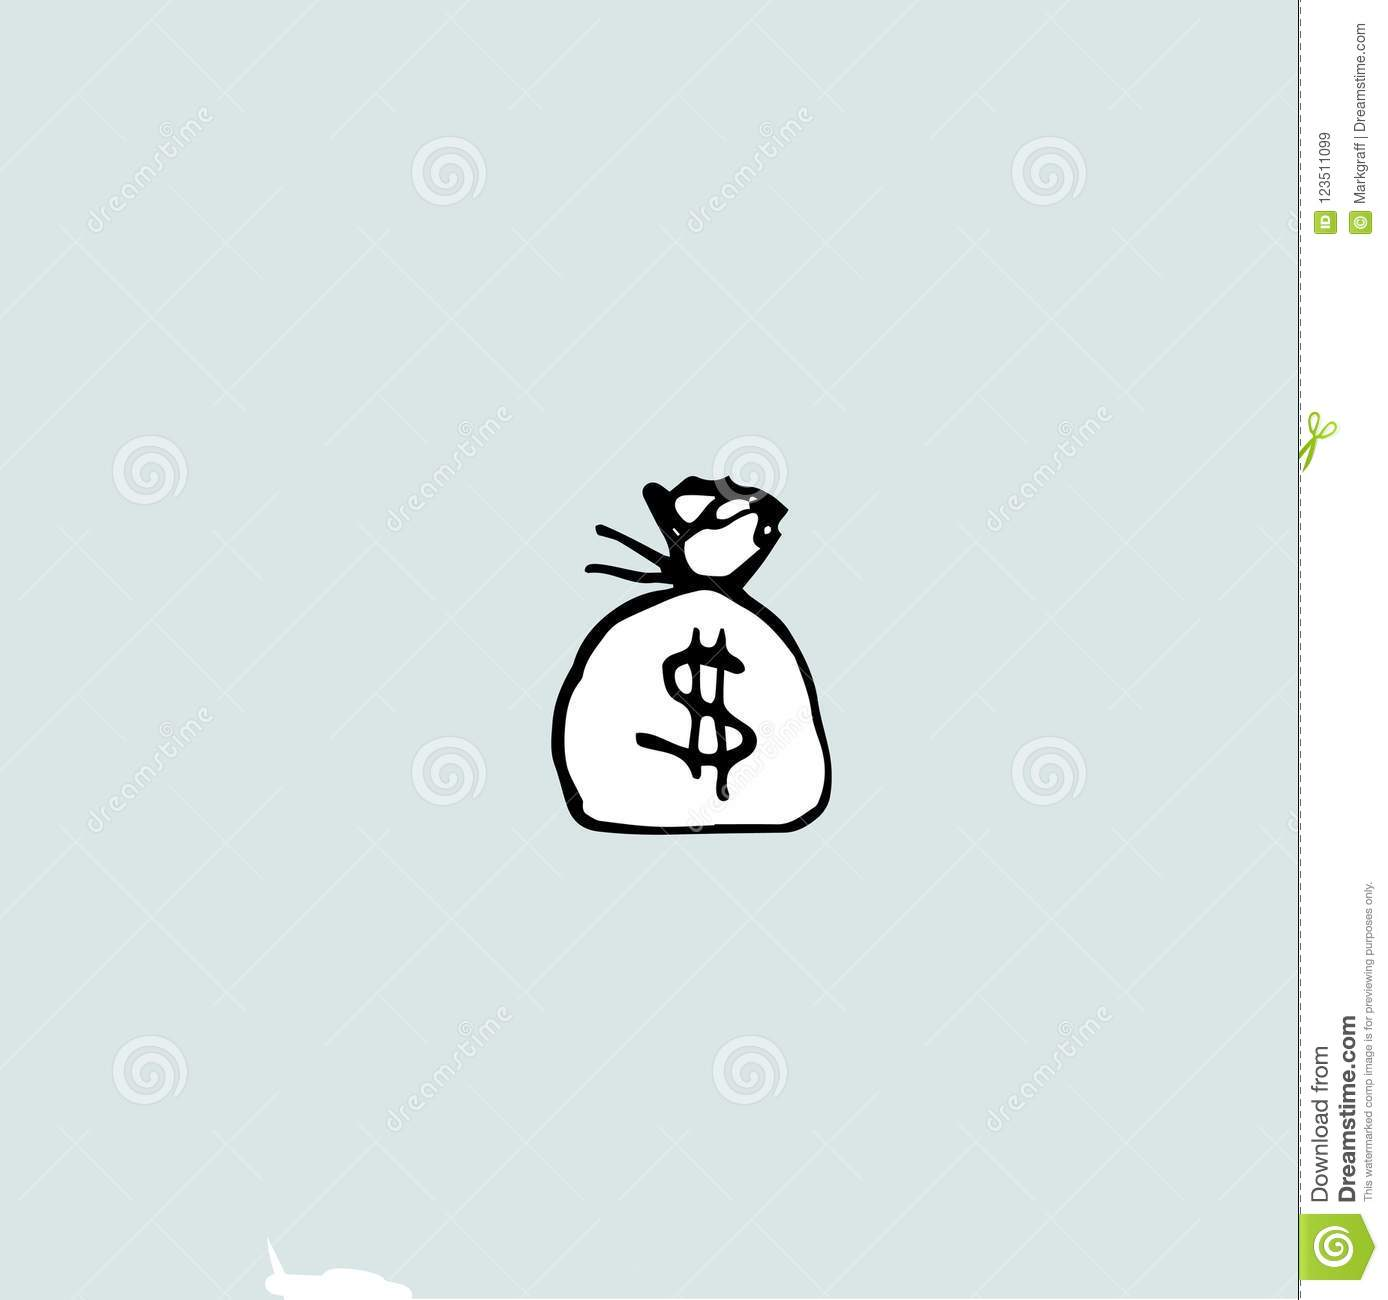 Drawing Of A Money Bag, Bag And Dollar Sign Stock Vector ...